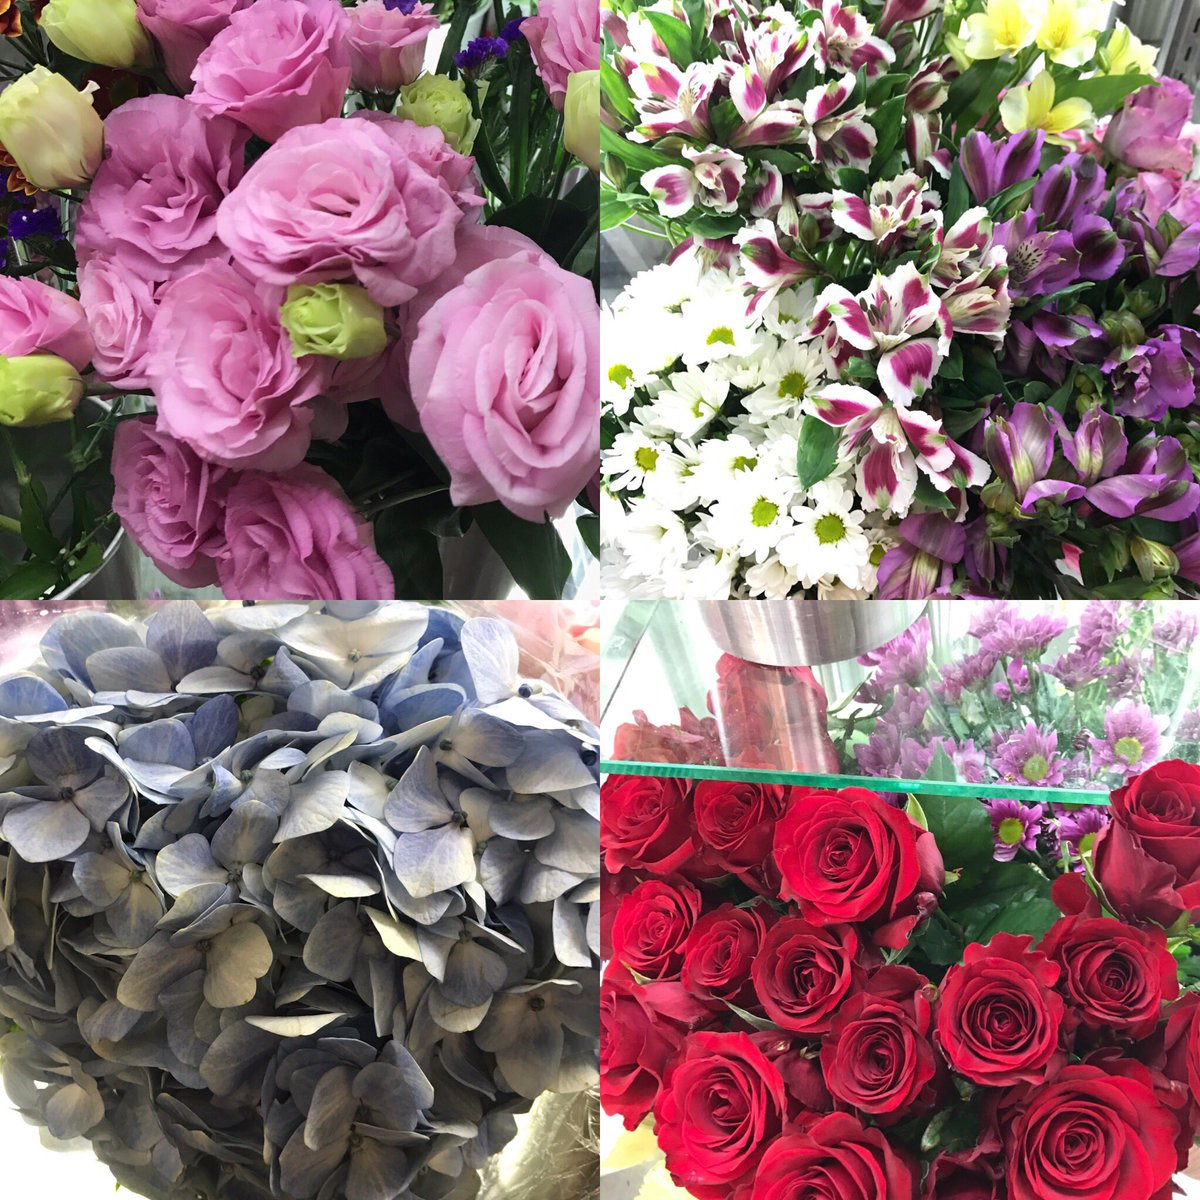 Flower gift korea on twitter some beautiful flowers for you flower gift korea on twitter some beautiful flowers for you lisianthus alstromeria chrysanthemum hydrangea roses at flowergiftkorea izmirmasajfo